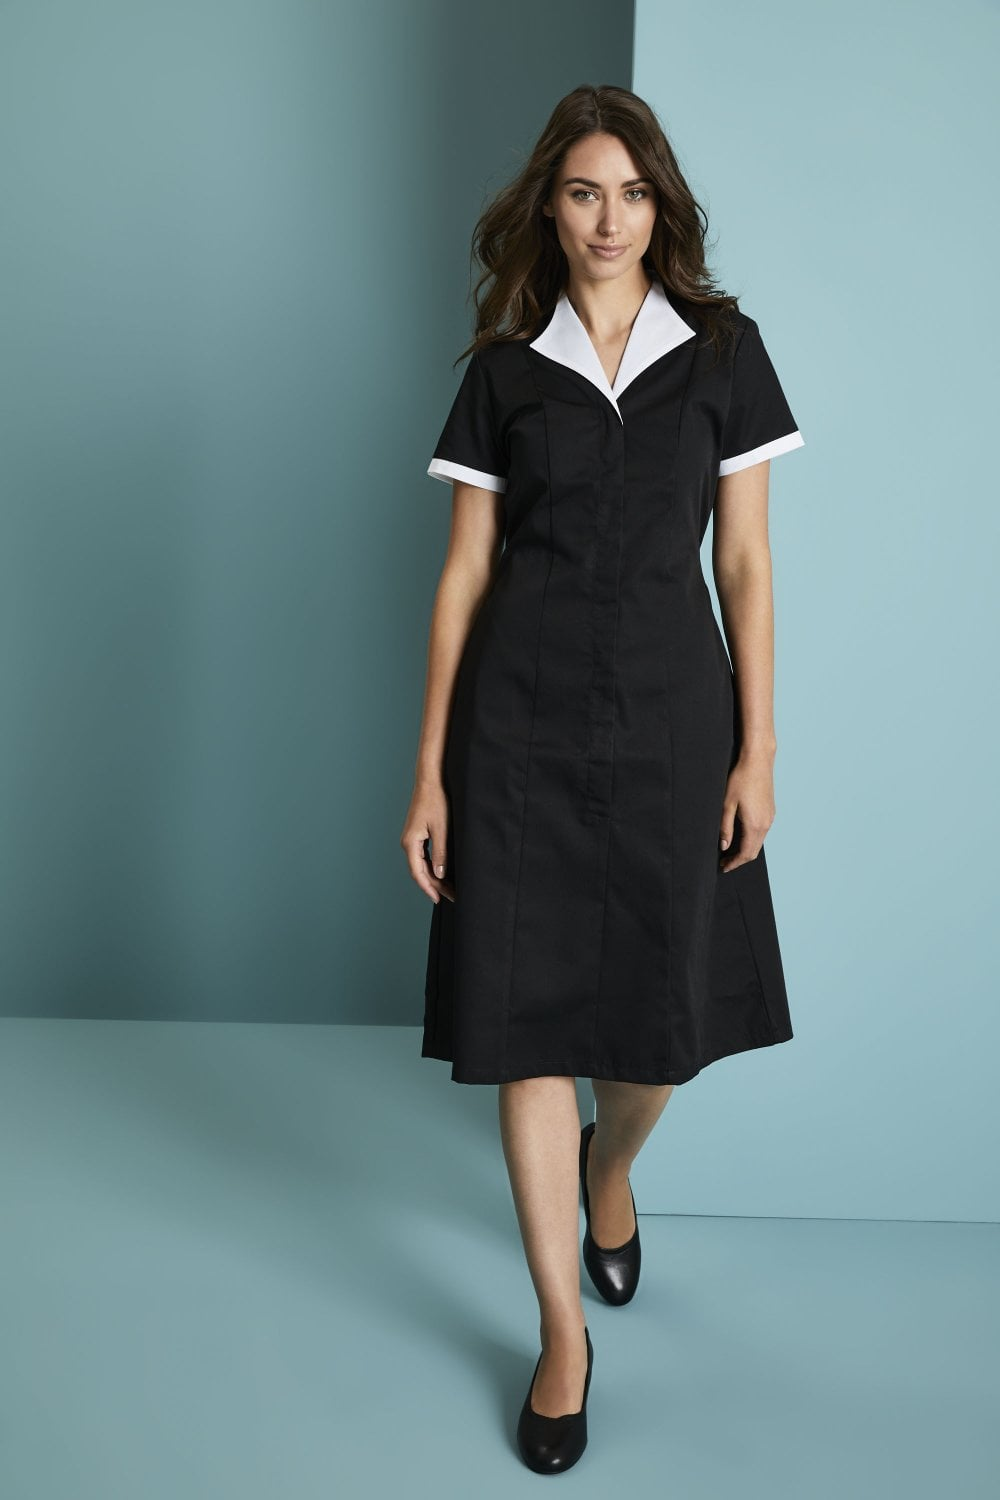 Black cleaning uniform staff uniform for cleaning worker housekeeping tunic with white trim